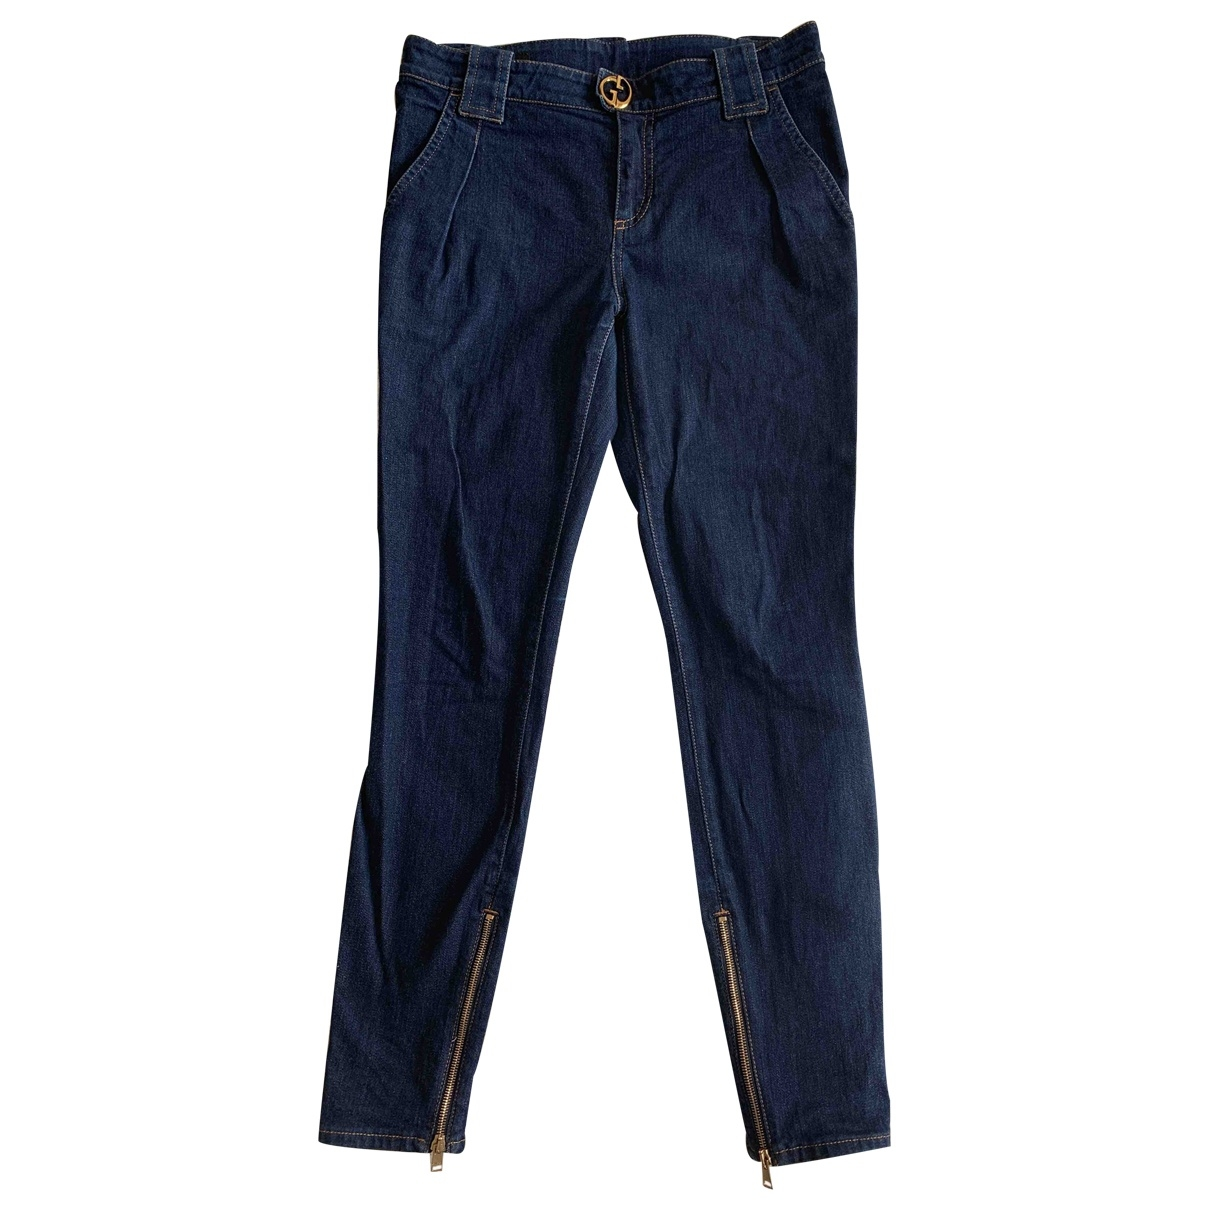 Gucci \N Blue Cotton - elasthane Jeans for Women 40 FR